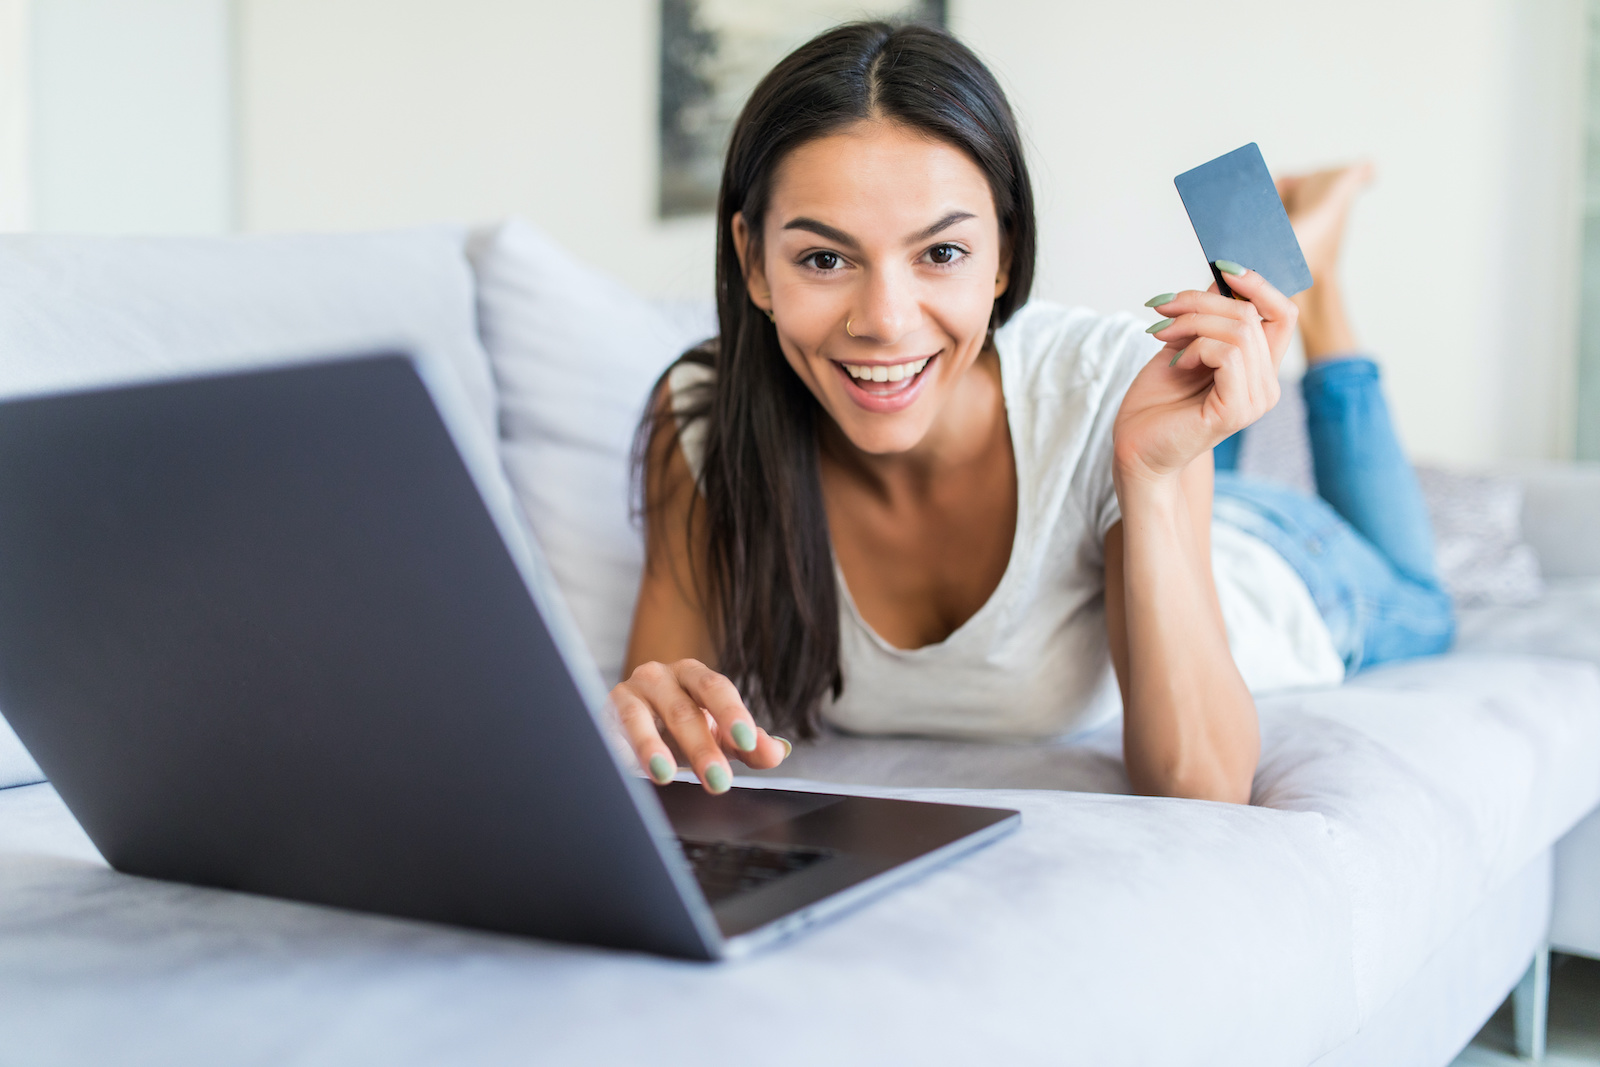 Credit card for bad credit: A smiling woman holds a credit card while working on the computer